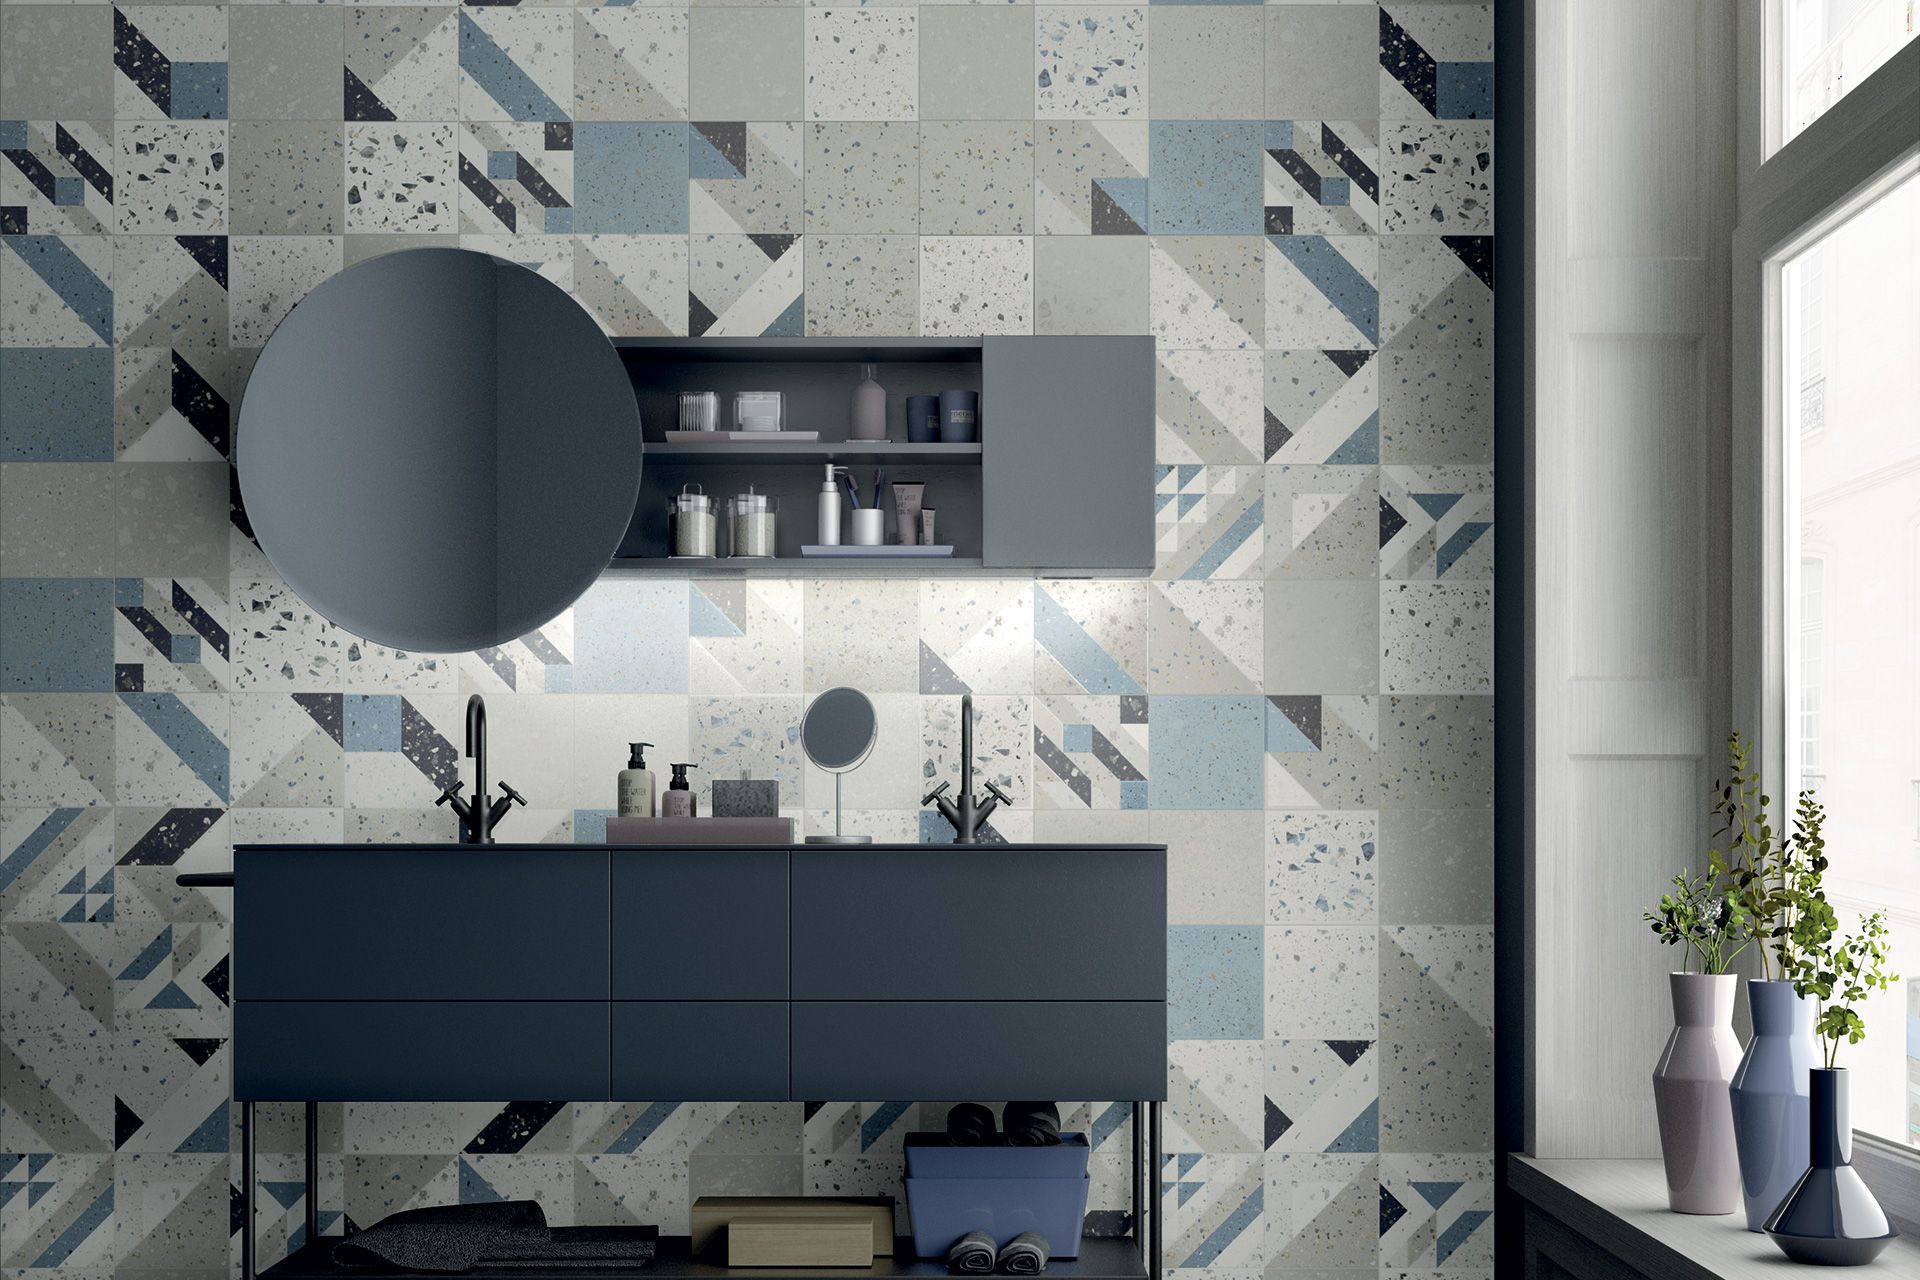 Modern Design Porcelain Tiles - ARQUI